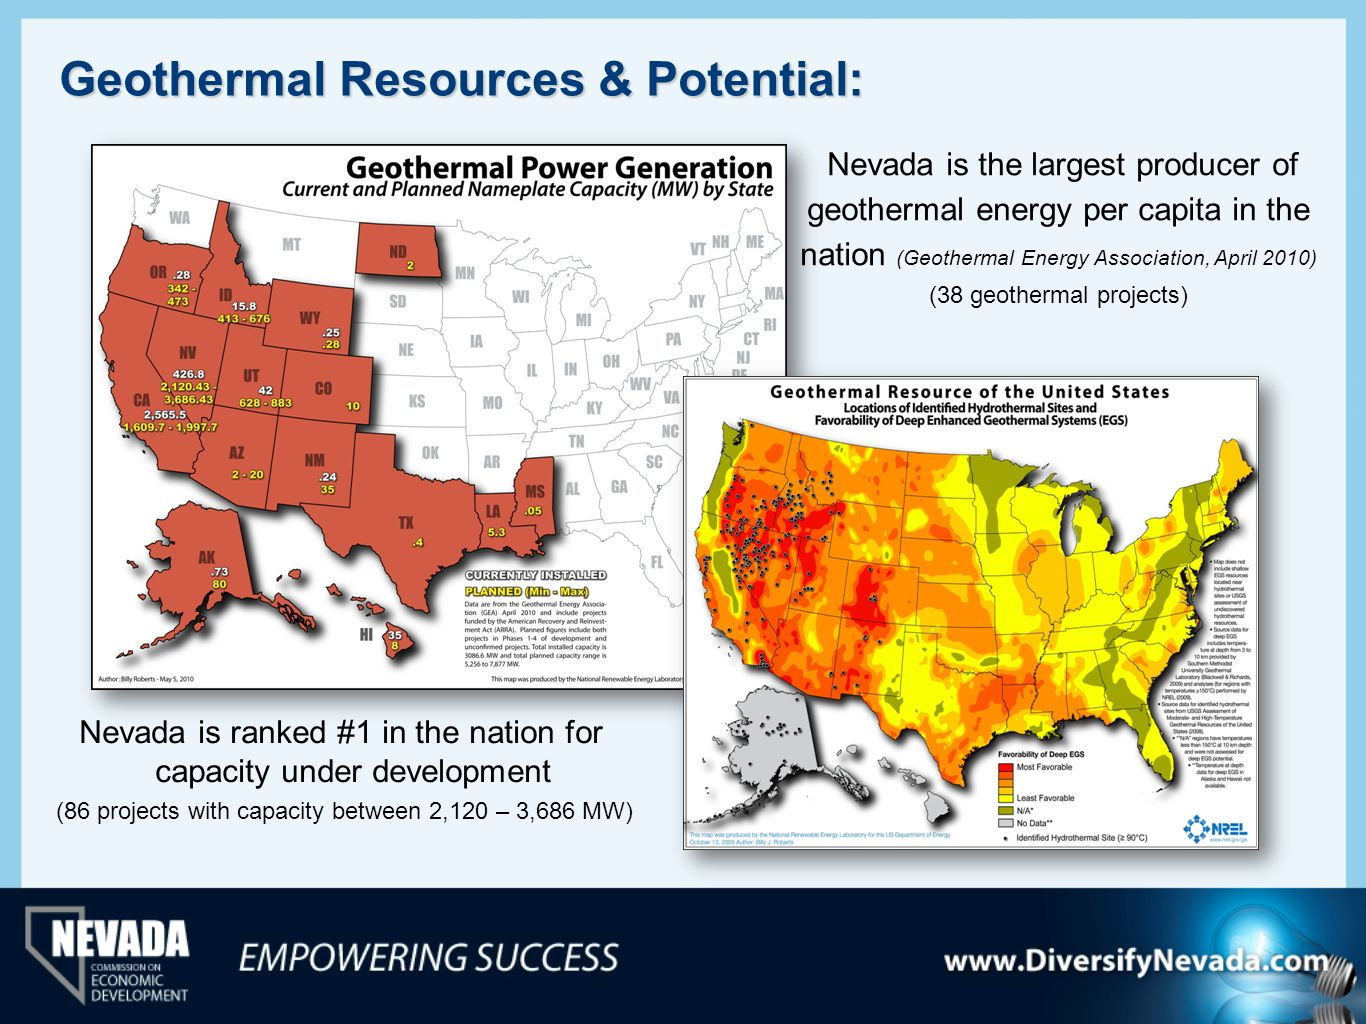 Geothermal Resources & Potential: